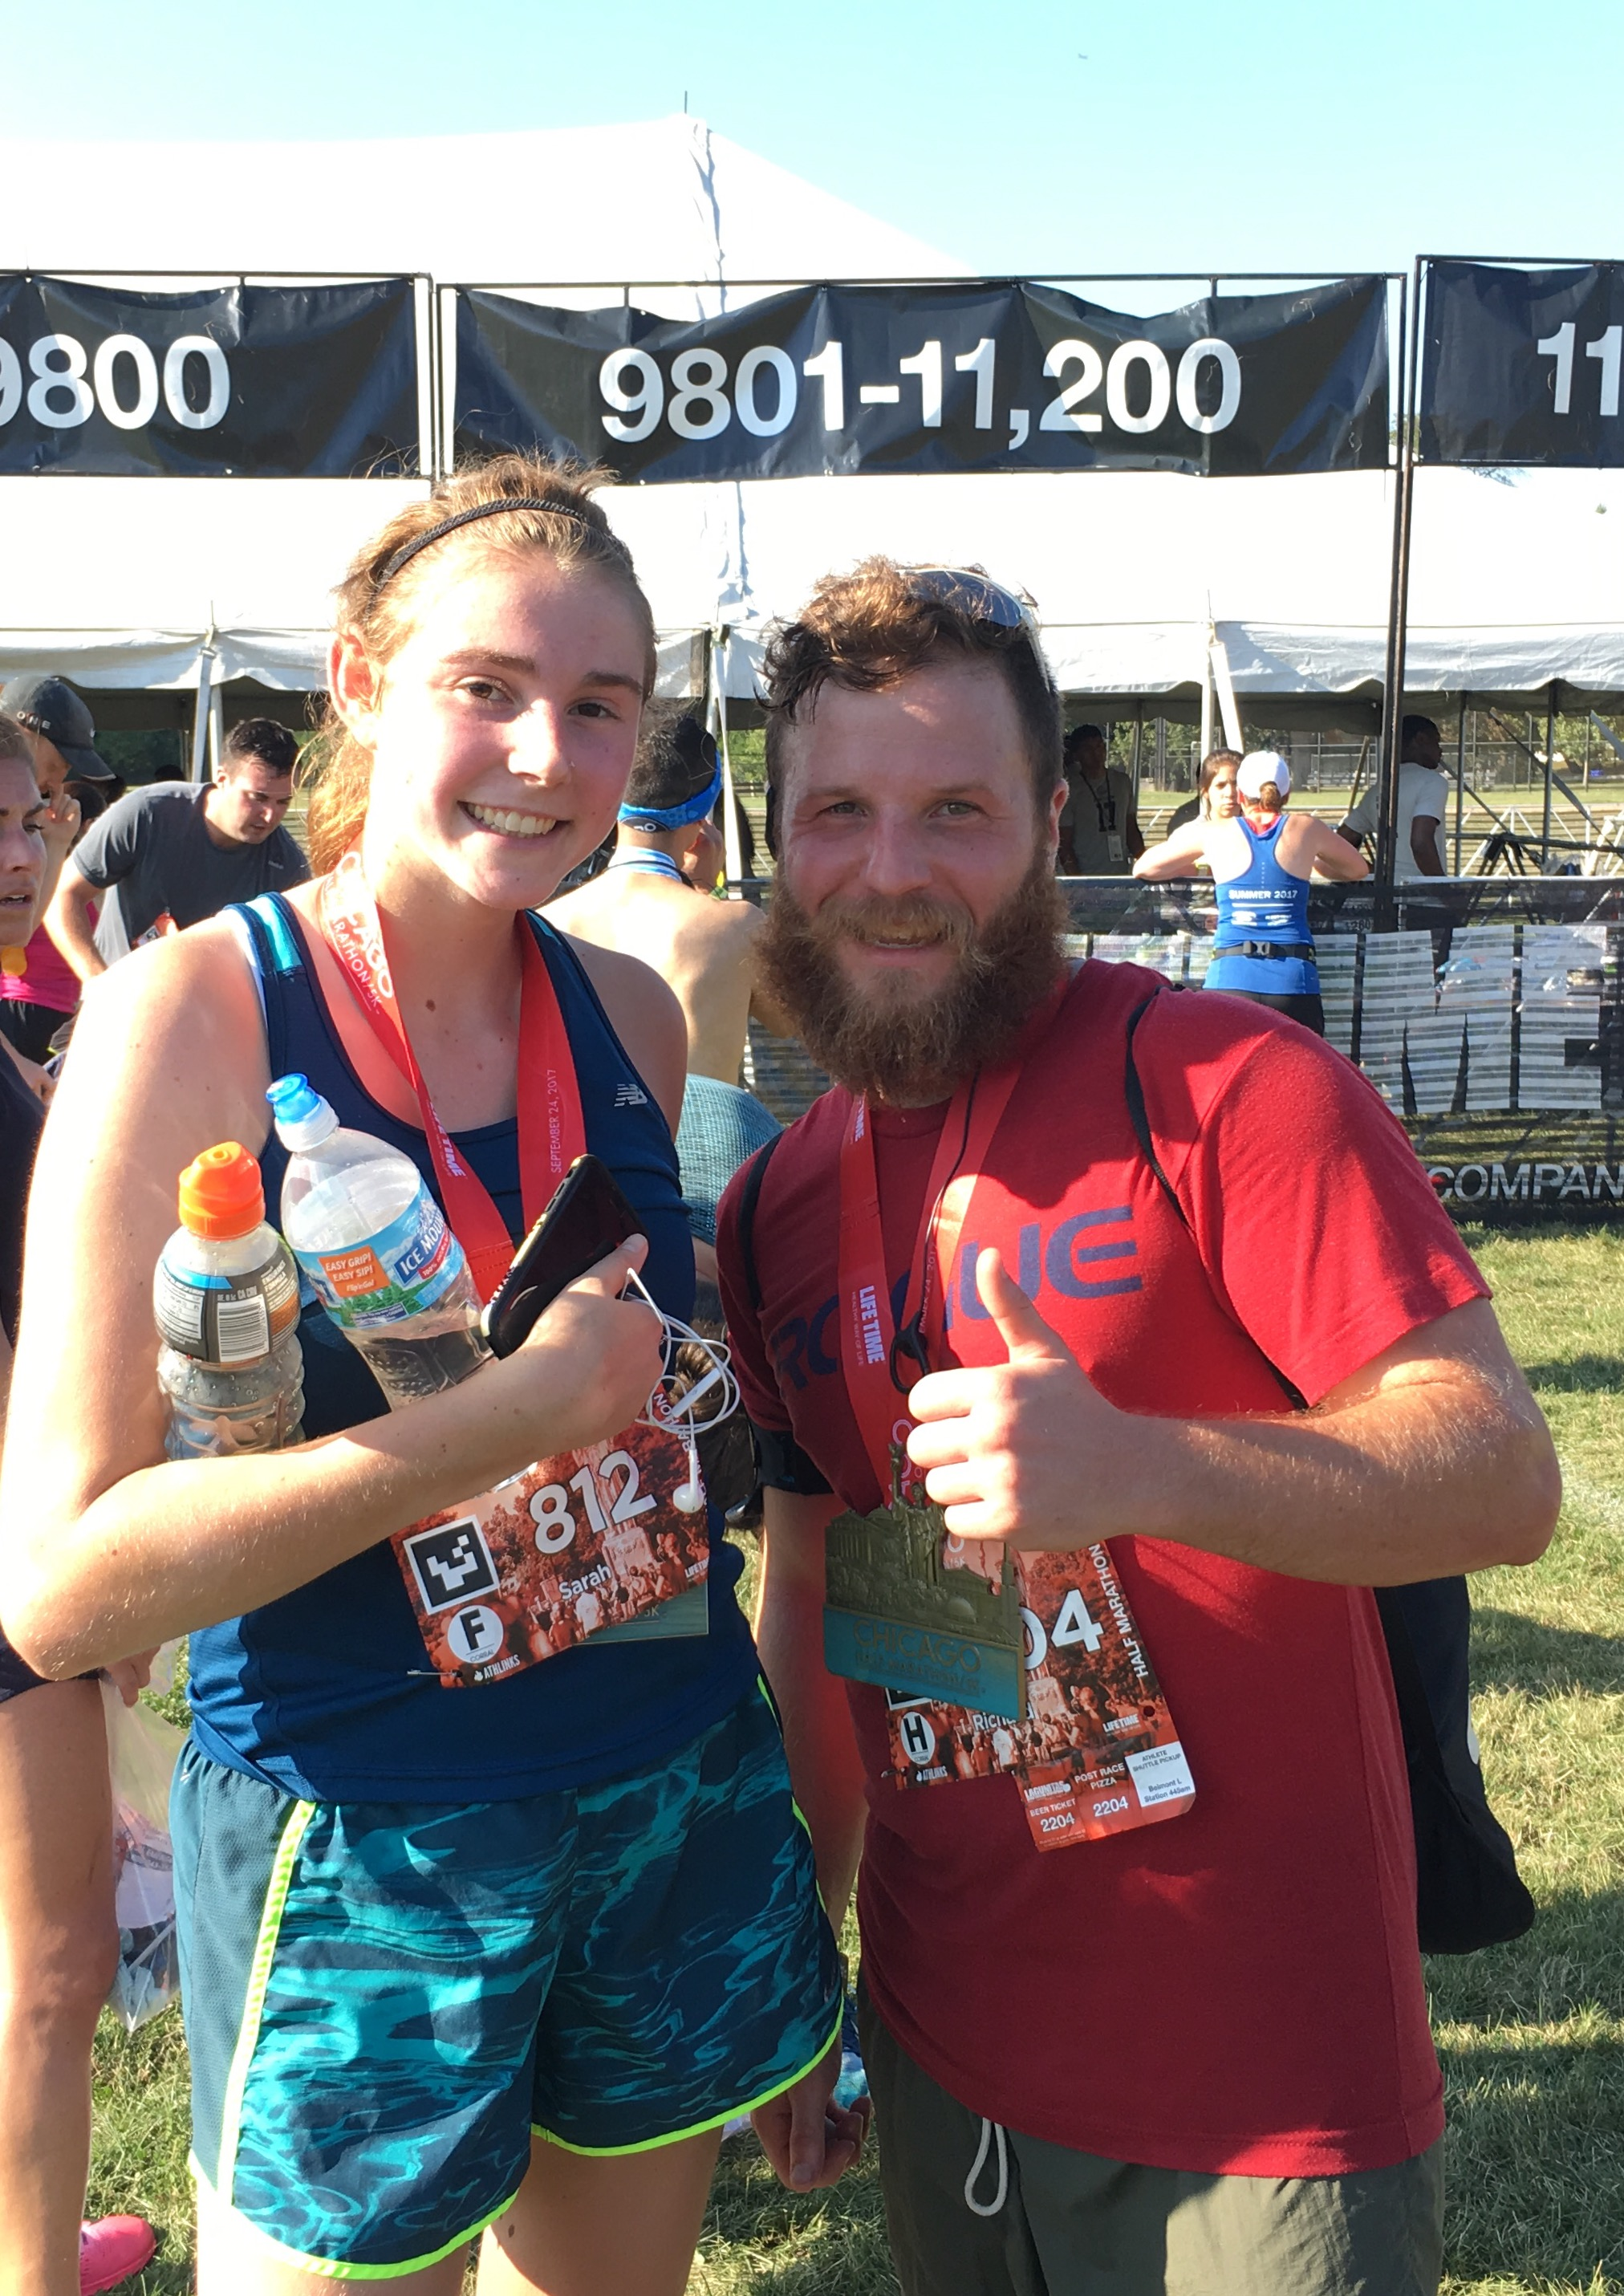 DePaul University students,Sarah Hamilton and Richard Lawson, at the finish line of the 2017 First Annual Starfish Dash fundraiser.